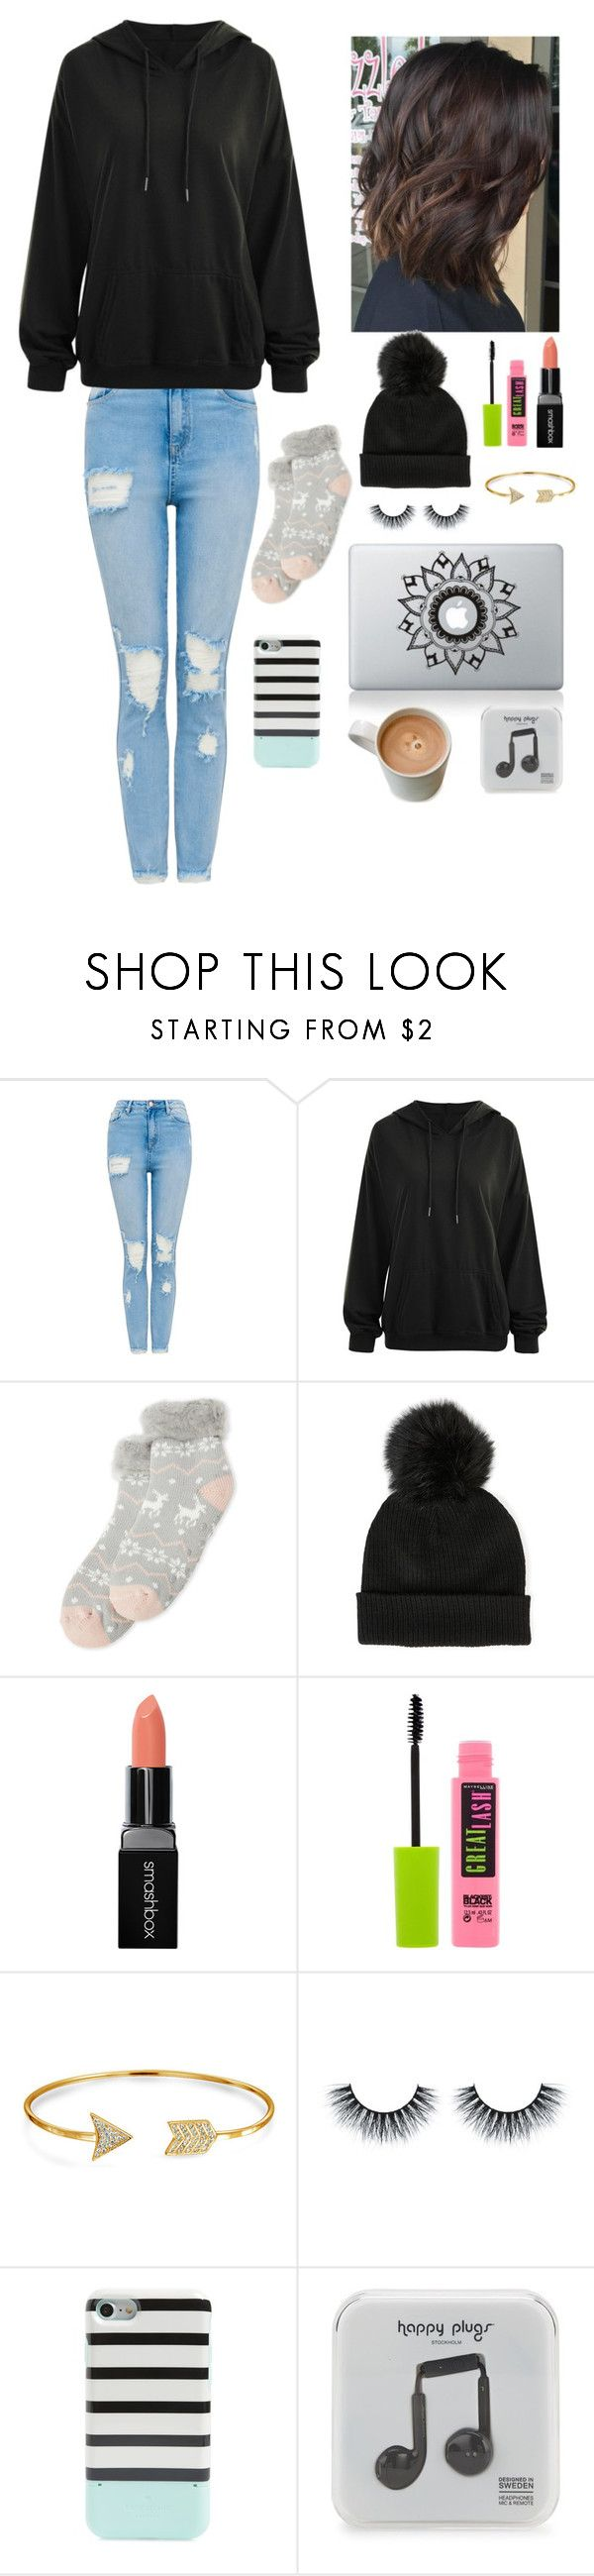 """Day 2 at Tahoe"" by gussied-up ❤ liked on Polyvore featuring Capelli New York, Sole Society, Smashbox, Maybelline, Bling Jewelry, Kate Spade and Happy Plugs"